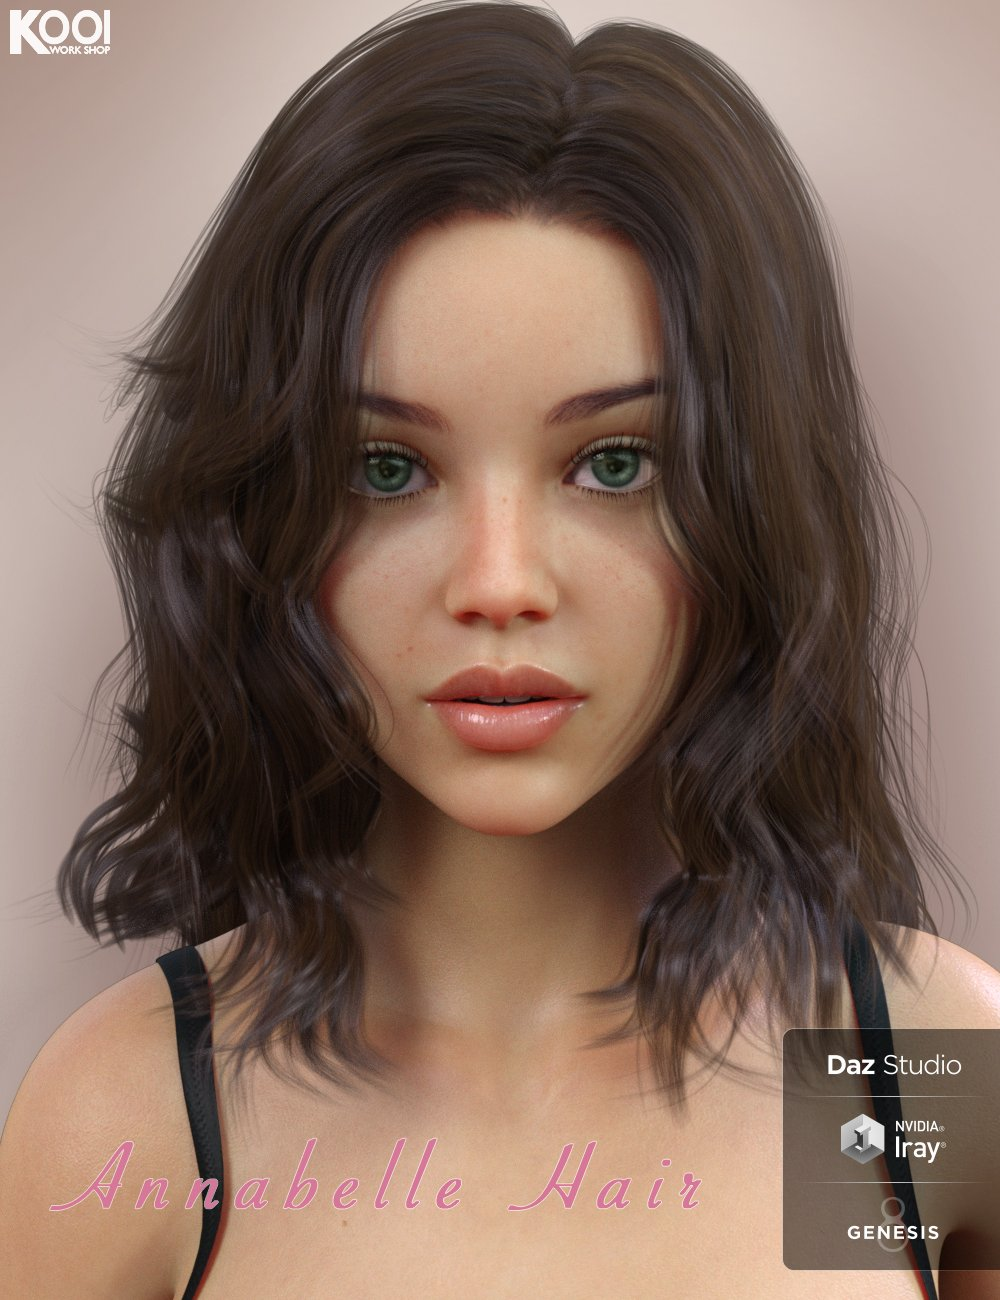 Annabelle Hair for Genesis 8 Female(s) by: Kool, 3D Models by Daz 3D